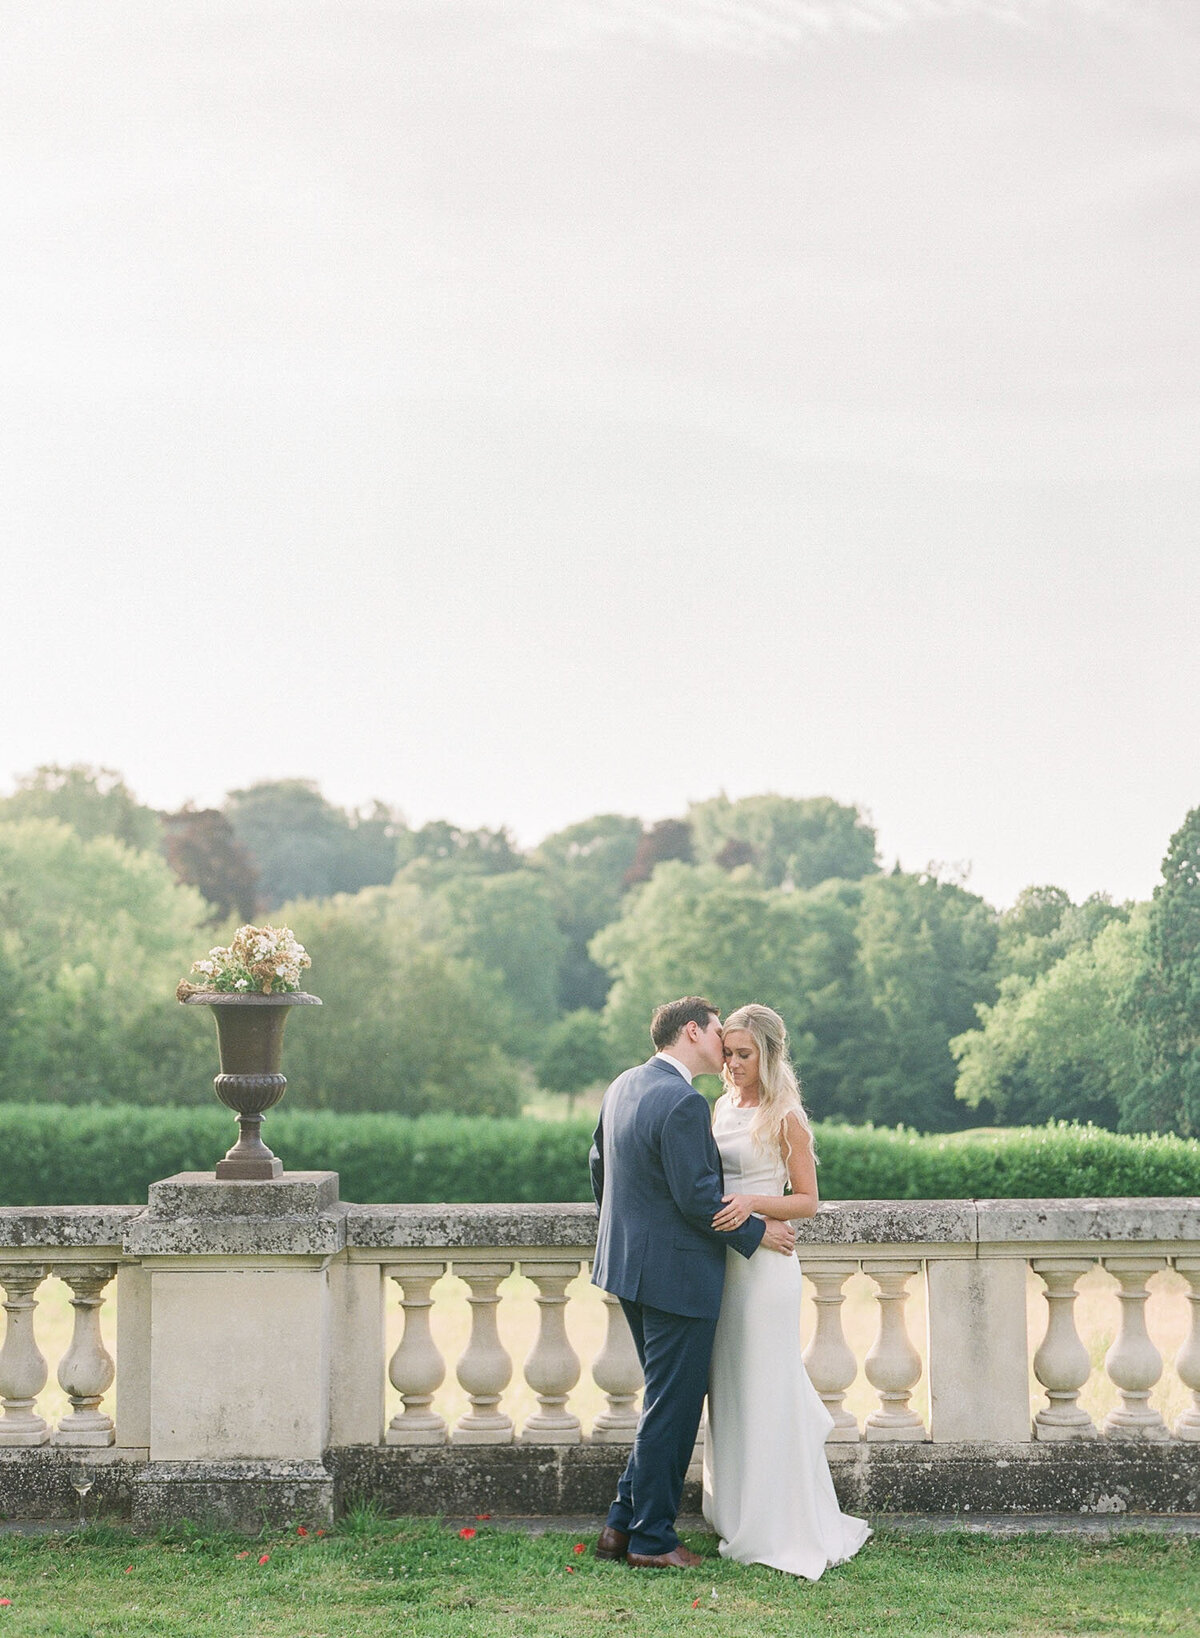 Molly-Carr-Photography-Paris-Wedding-Photographer-30